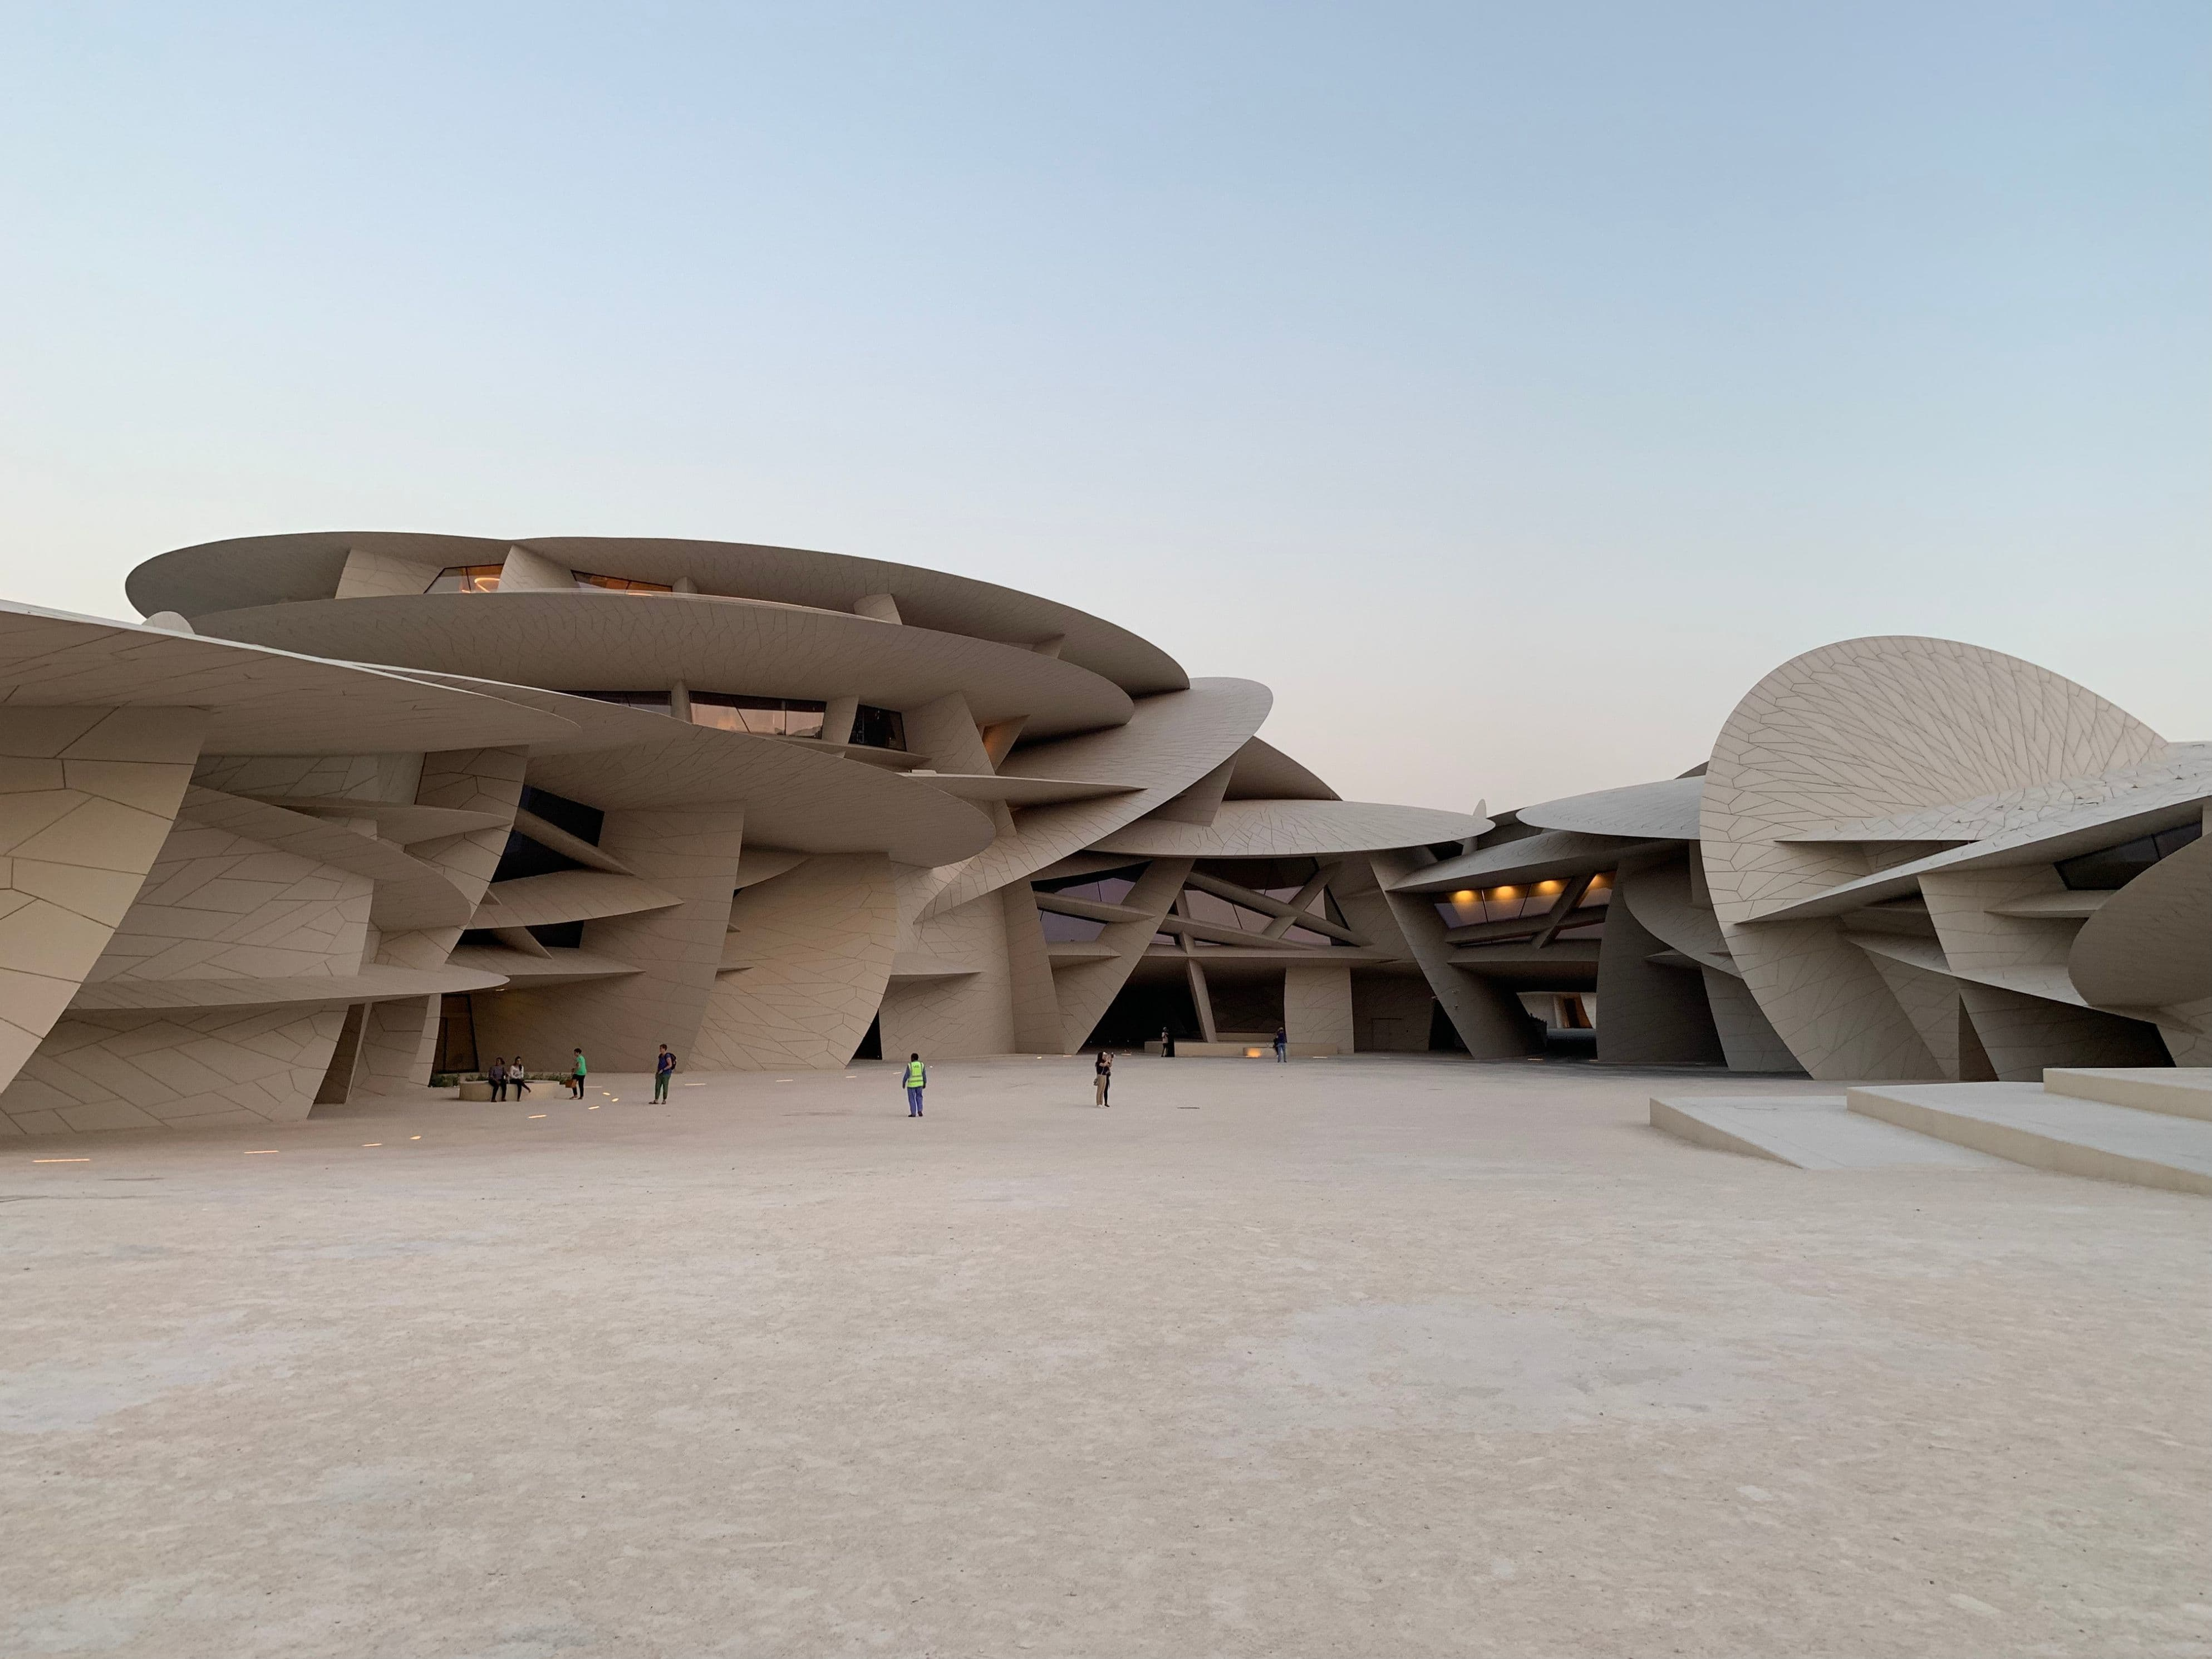 National Museum of Qatar, designed by French architect Jean Nouvel, takes its inspiration from the desert rose.